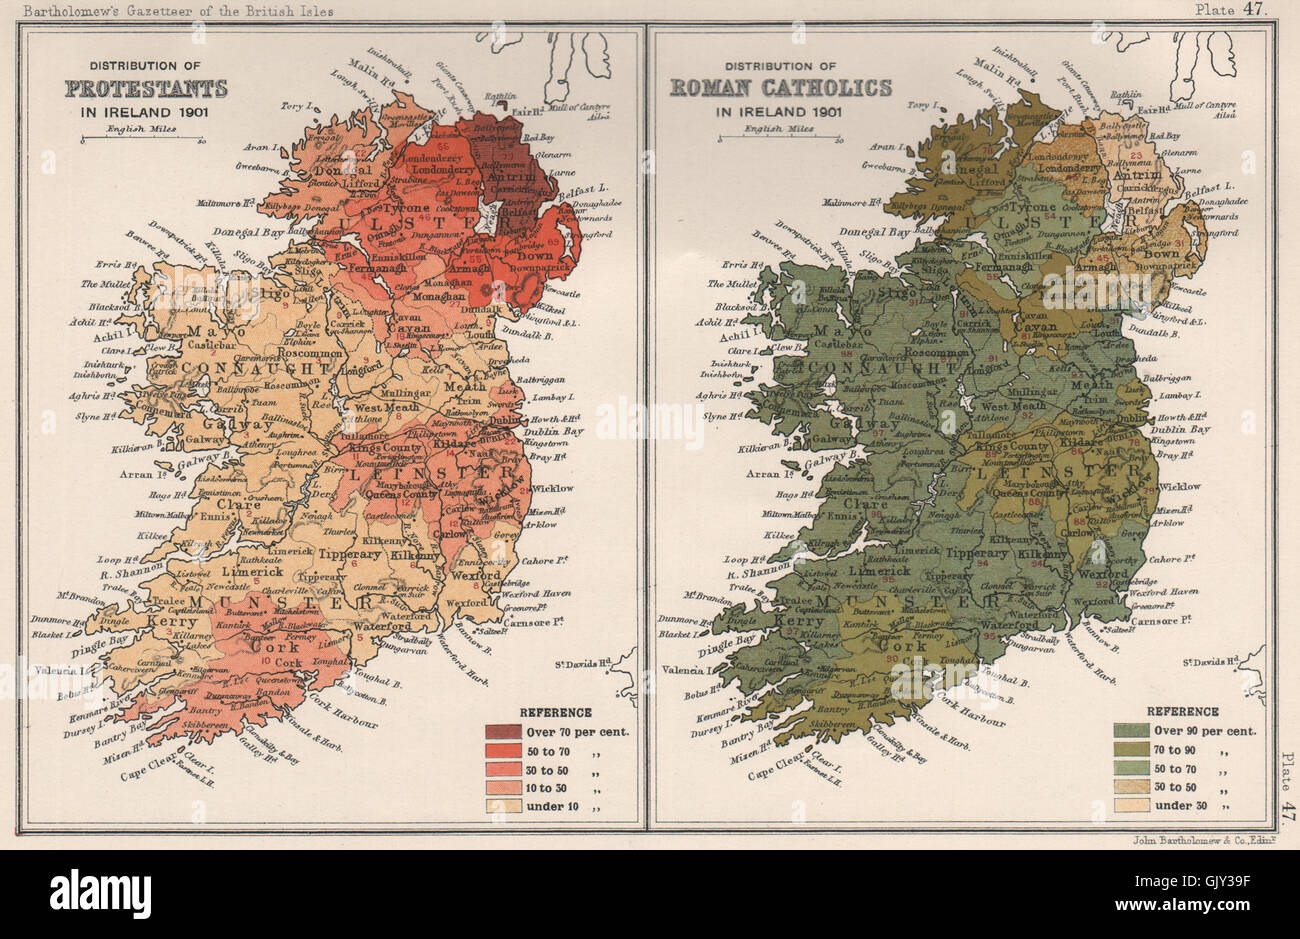 IRELAND SECTARIAN. Protestants & Roman Catholics distribution in 1901, 1904 map - Stock Image